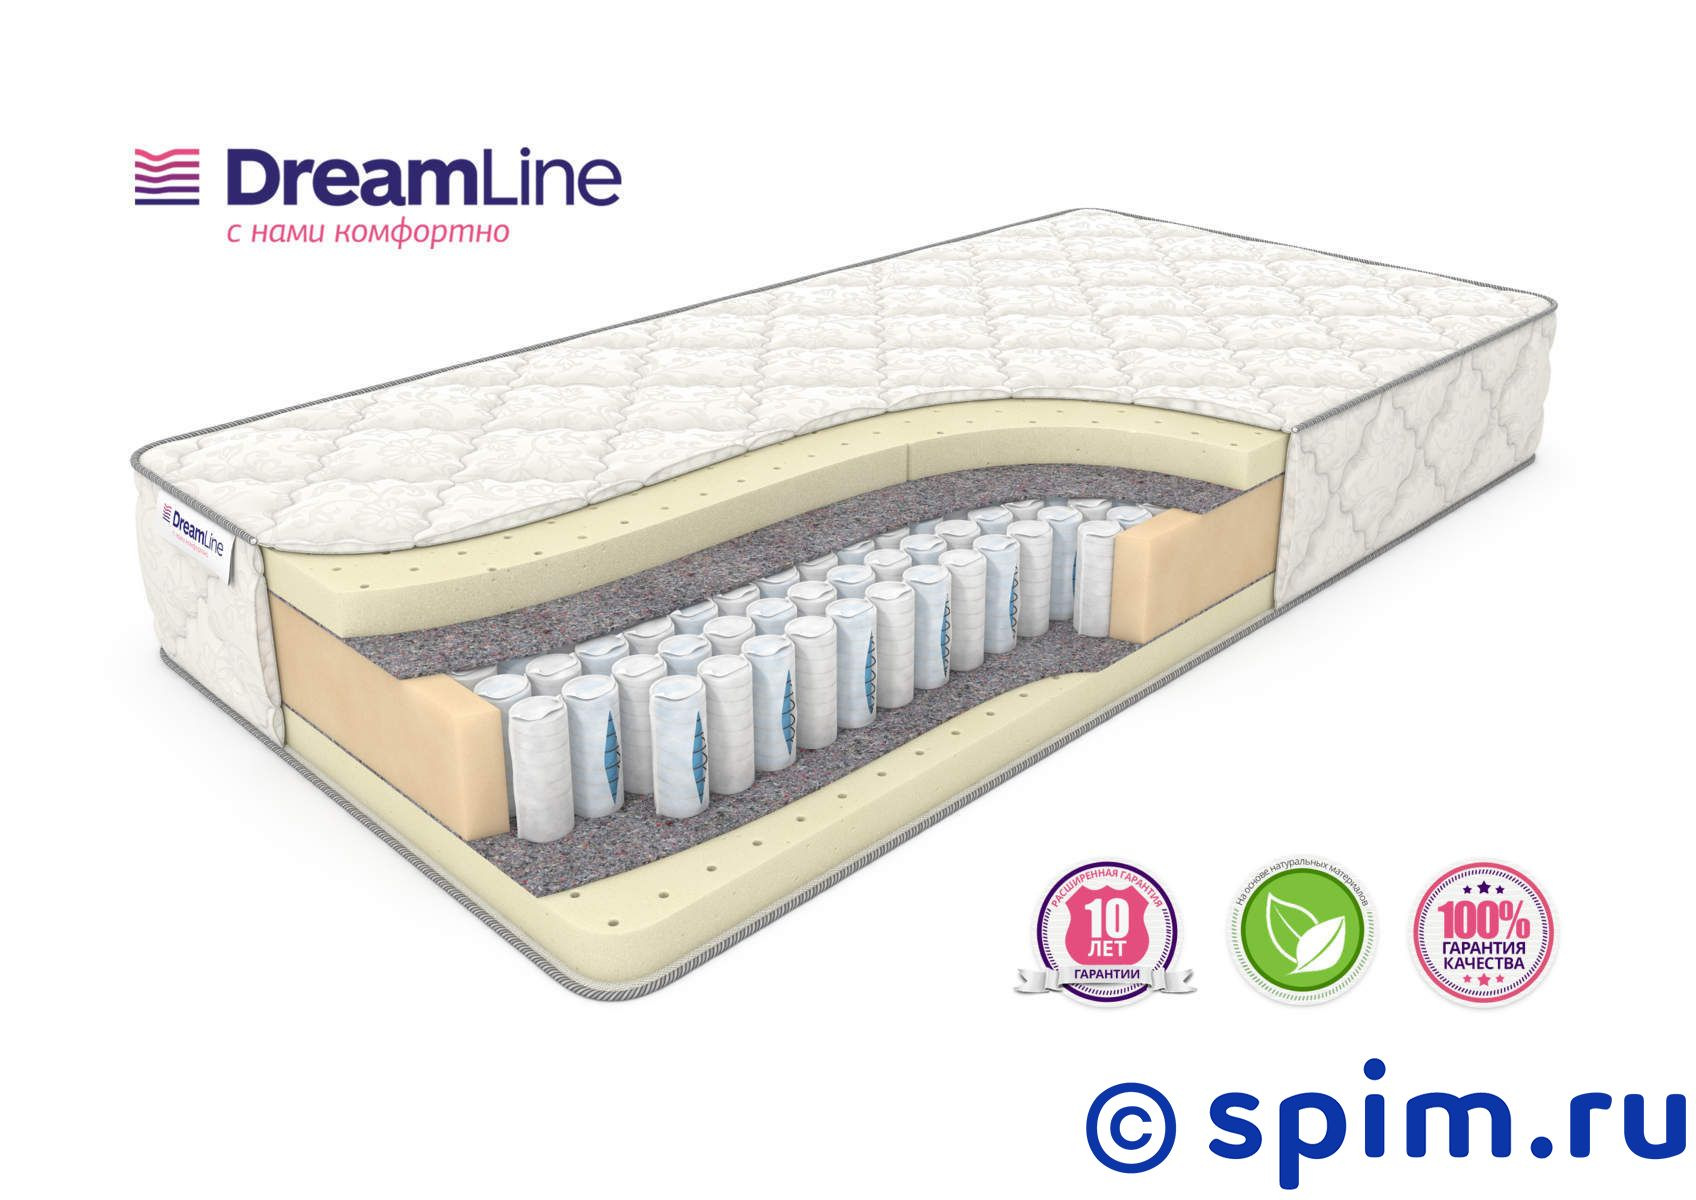 Матрас DreamLine Prime Soft Ds 180х195 см матрас dreamline dreamroll contour mix 180х200